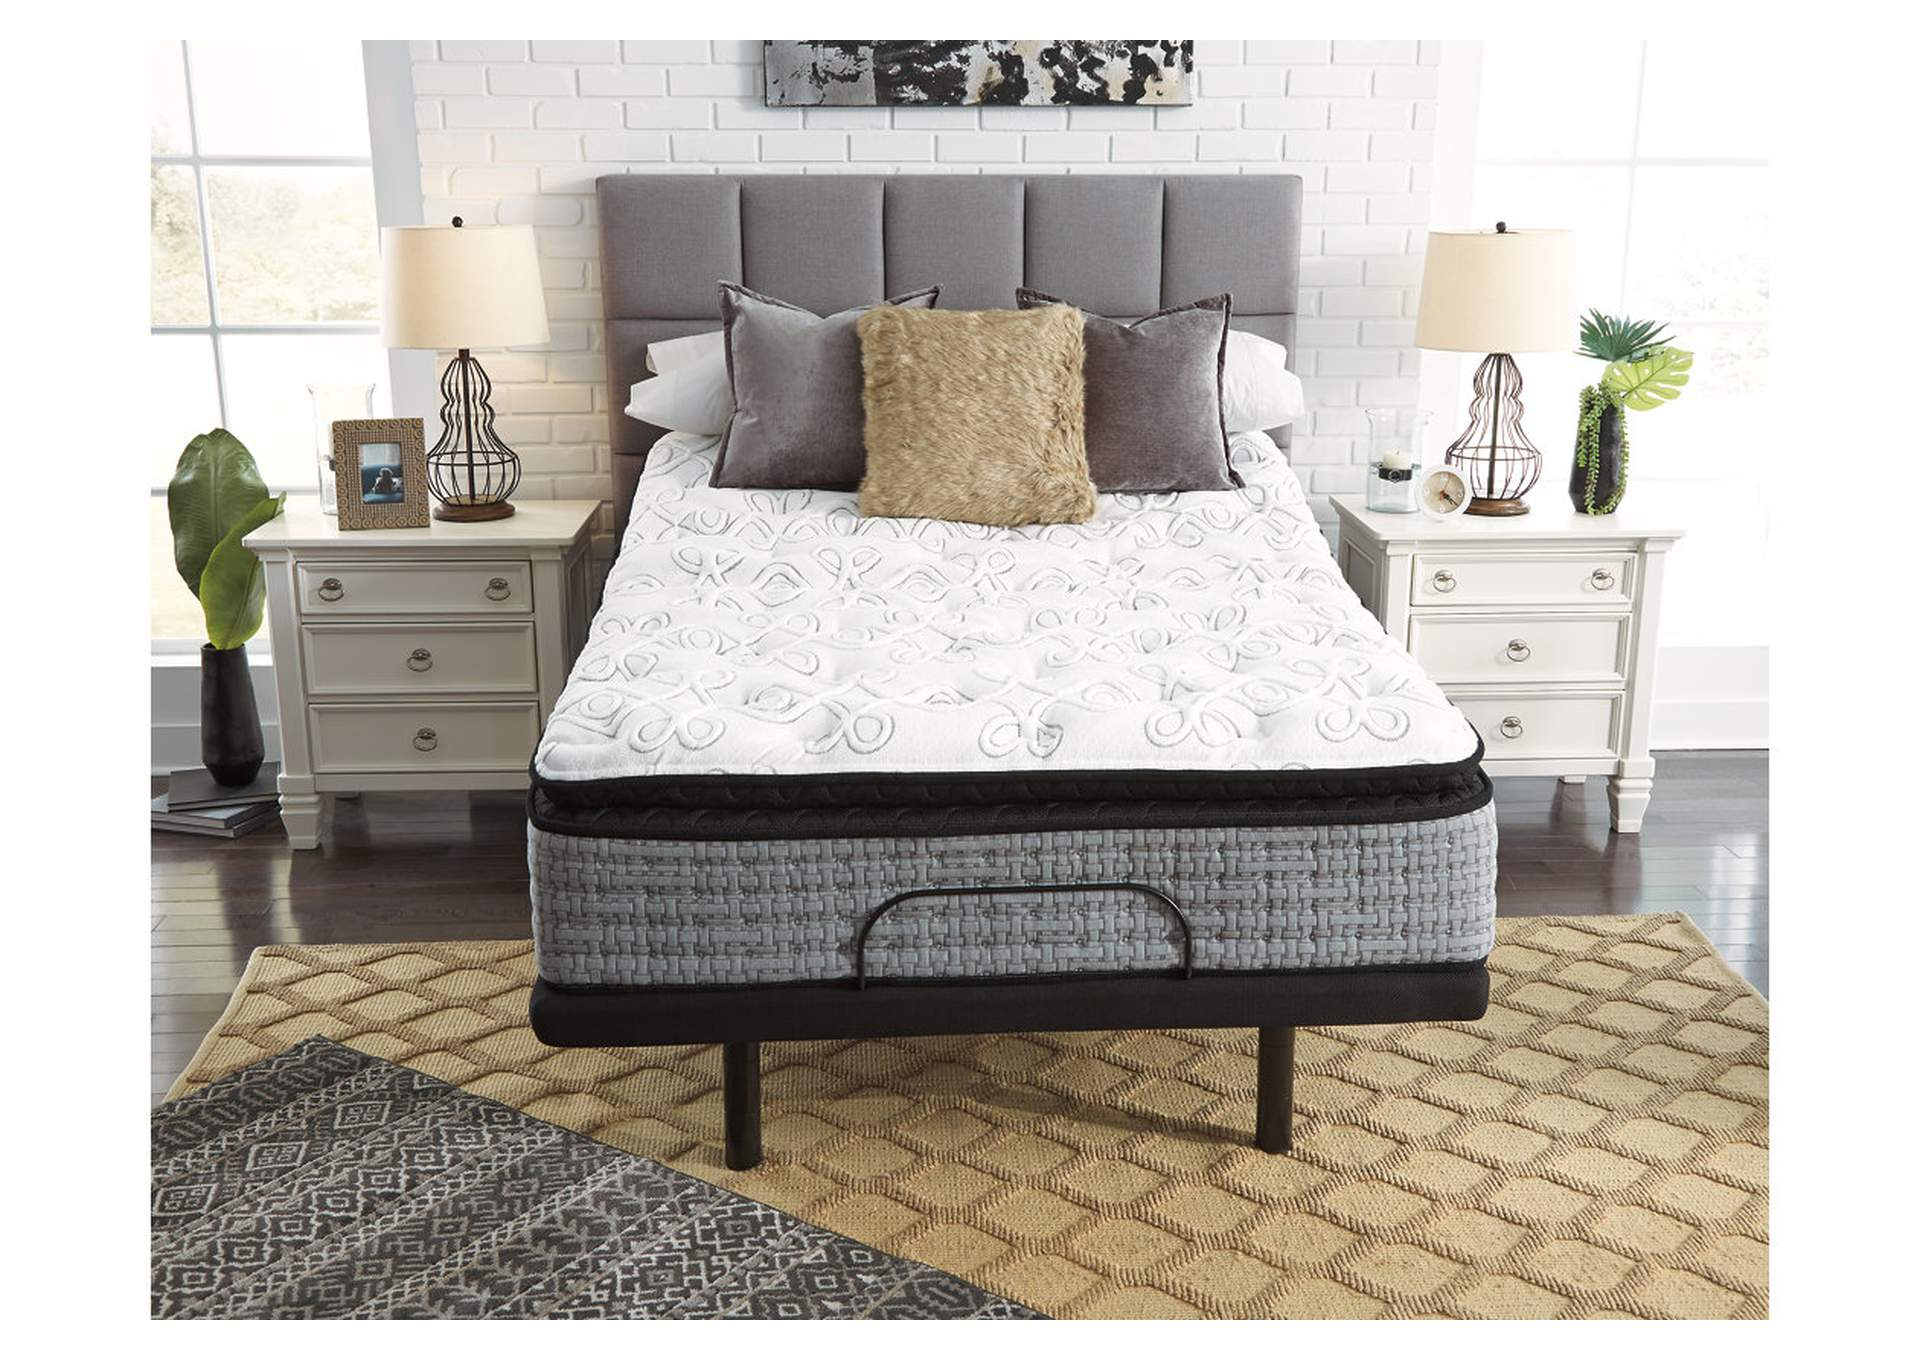 Mt. Rogers Ltd Pillowtop California King Mattress,Sierra Sleep by Ashley